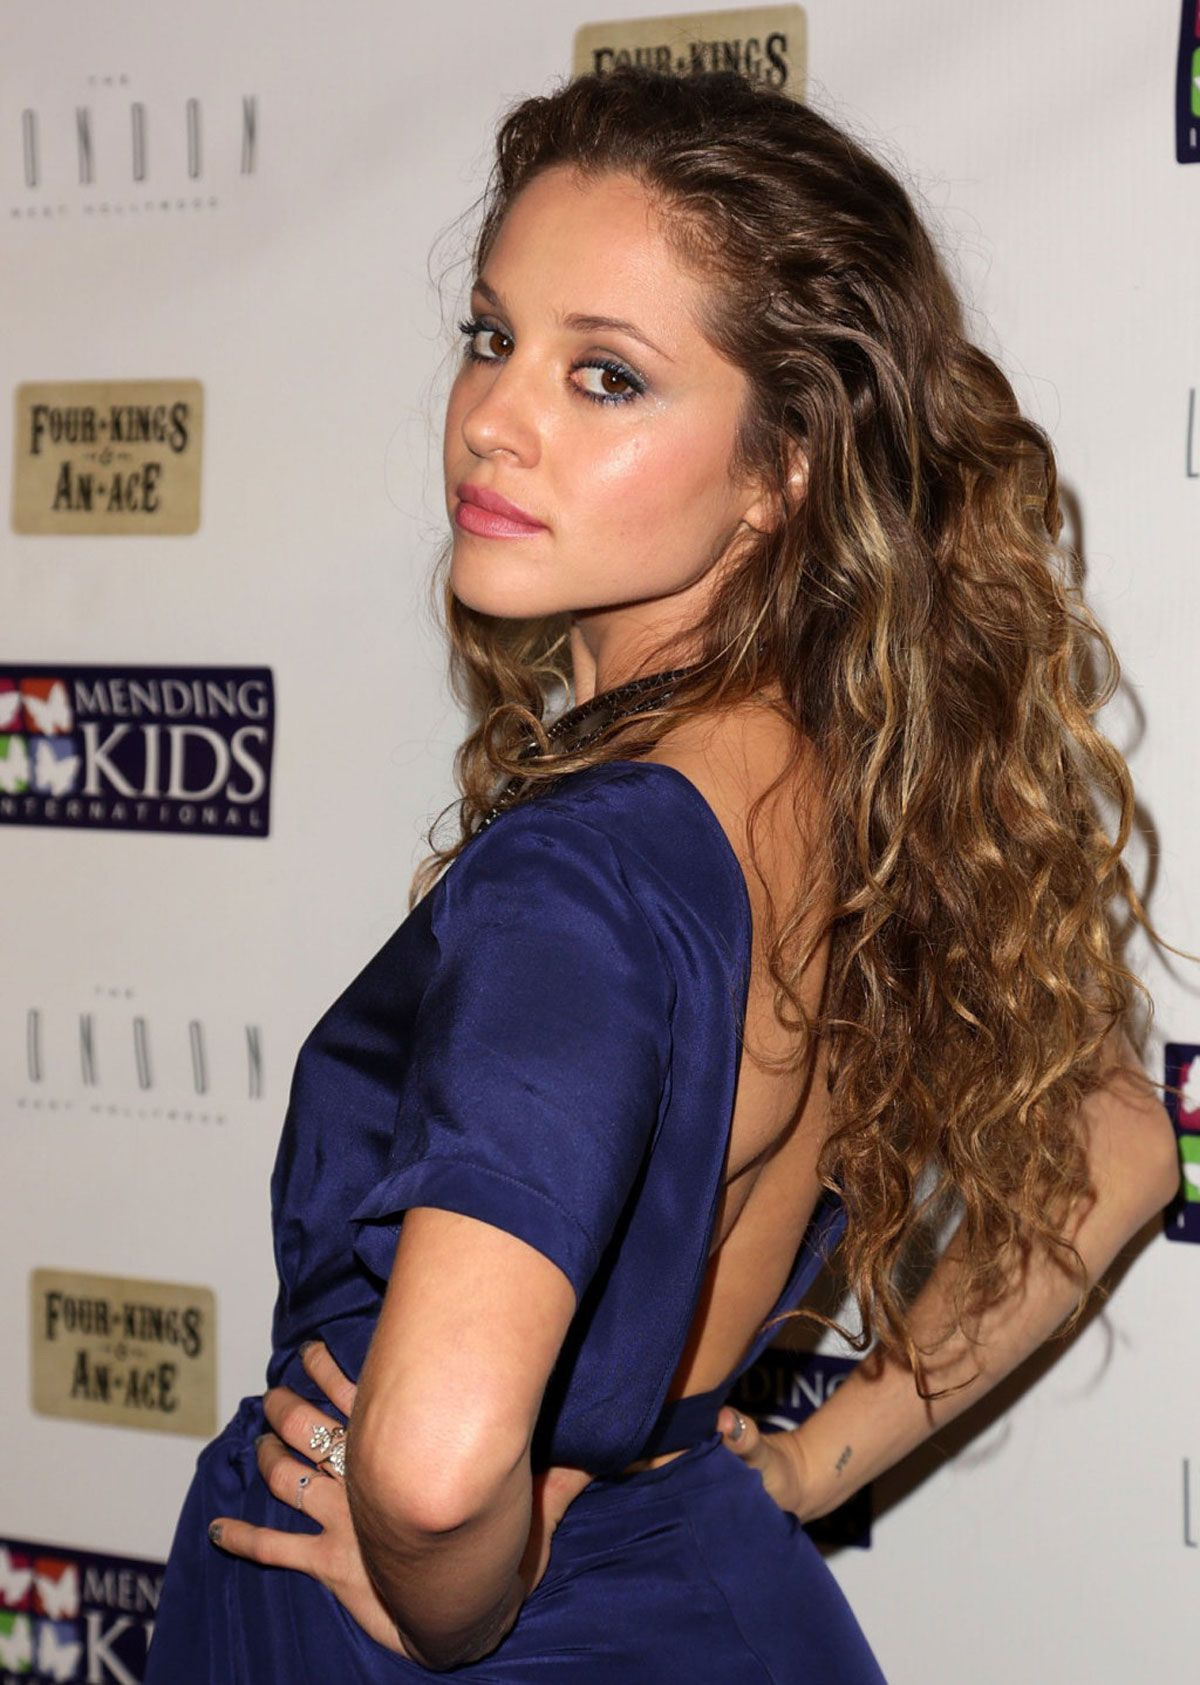 margarita levieva fansite